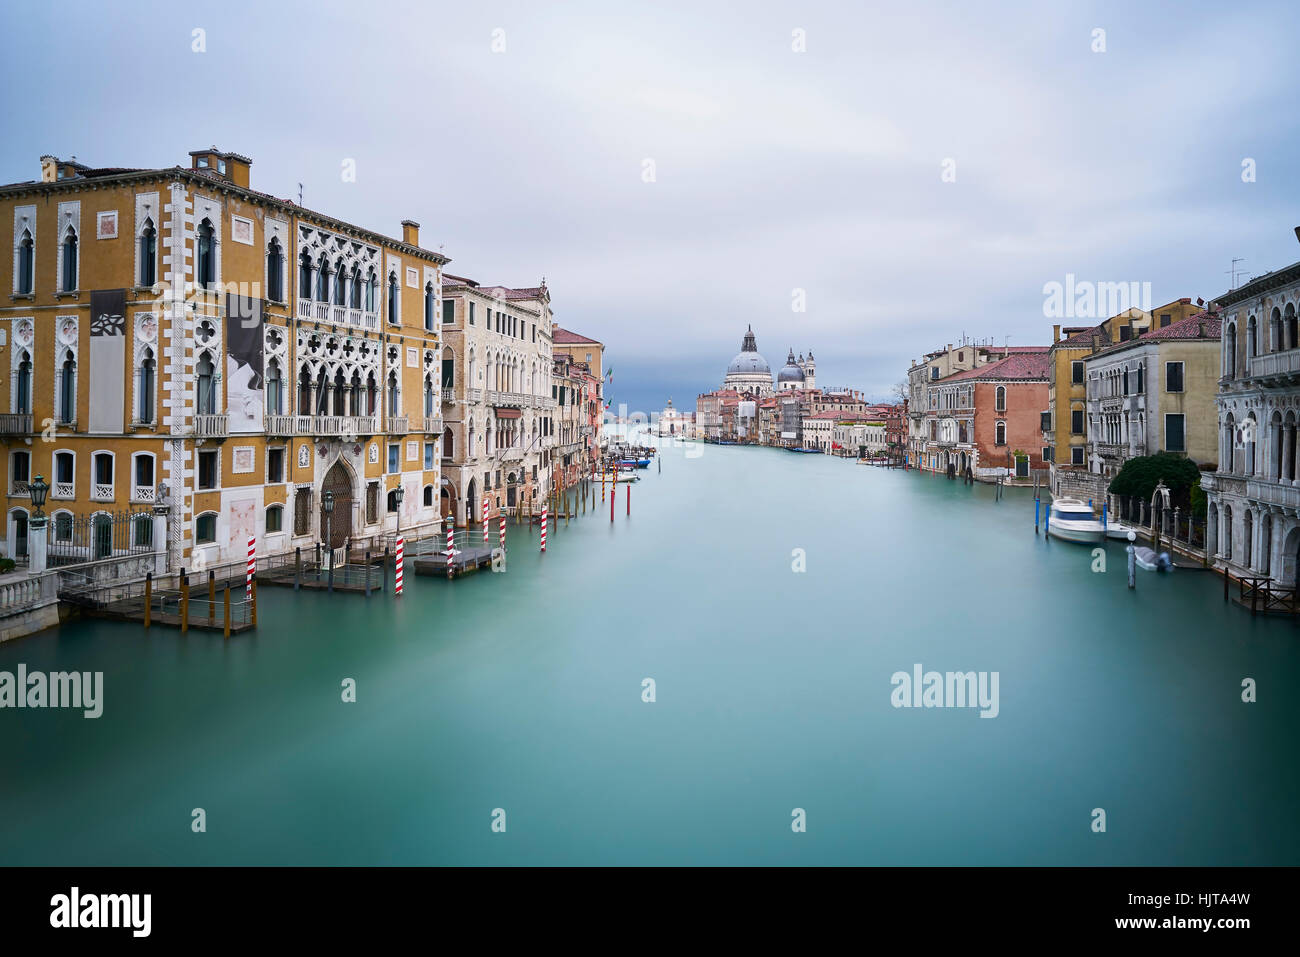 Italy, Venice, view to Canal Grande  from Academia Bridge at twilight - Stock Image